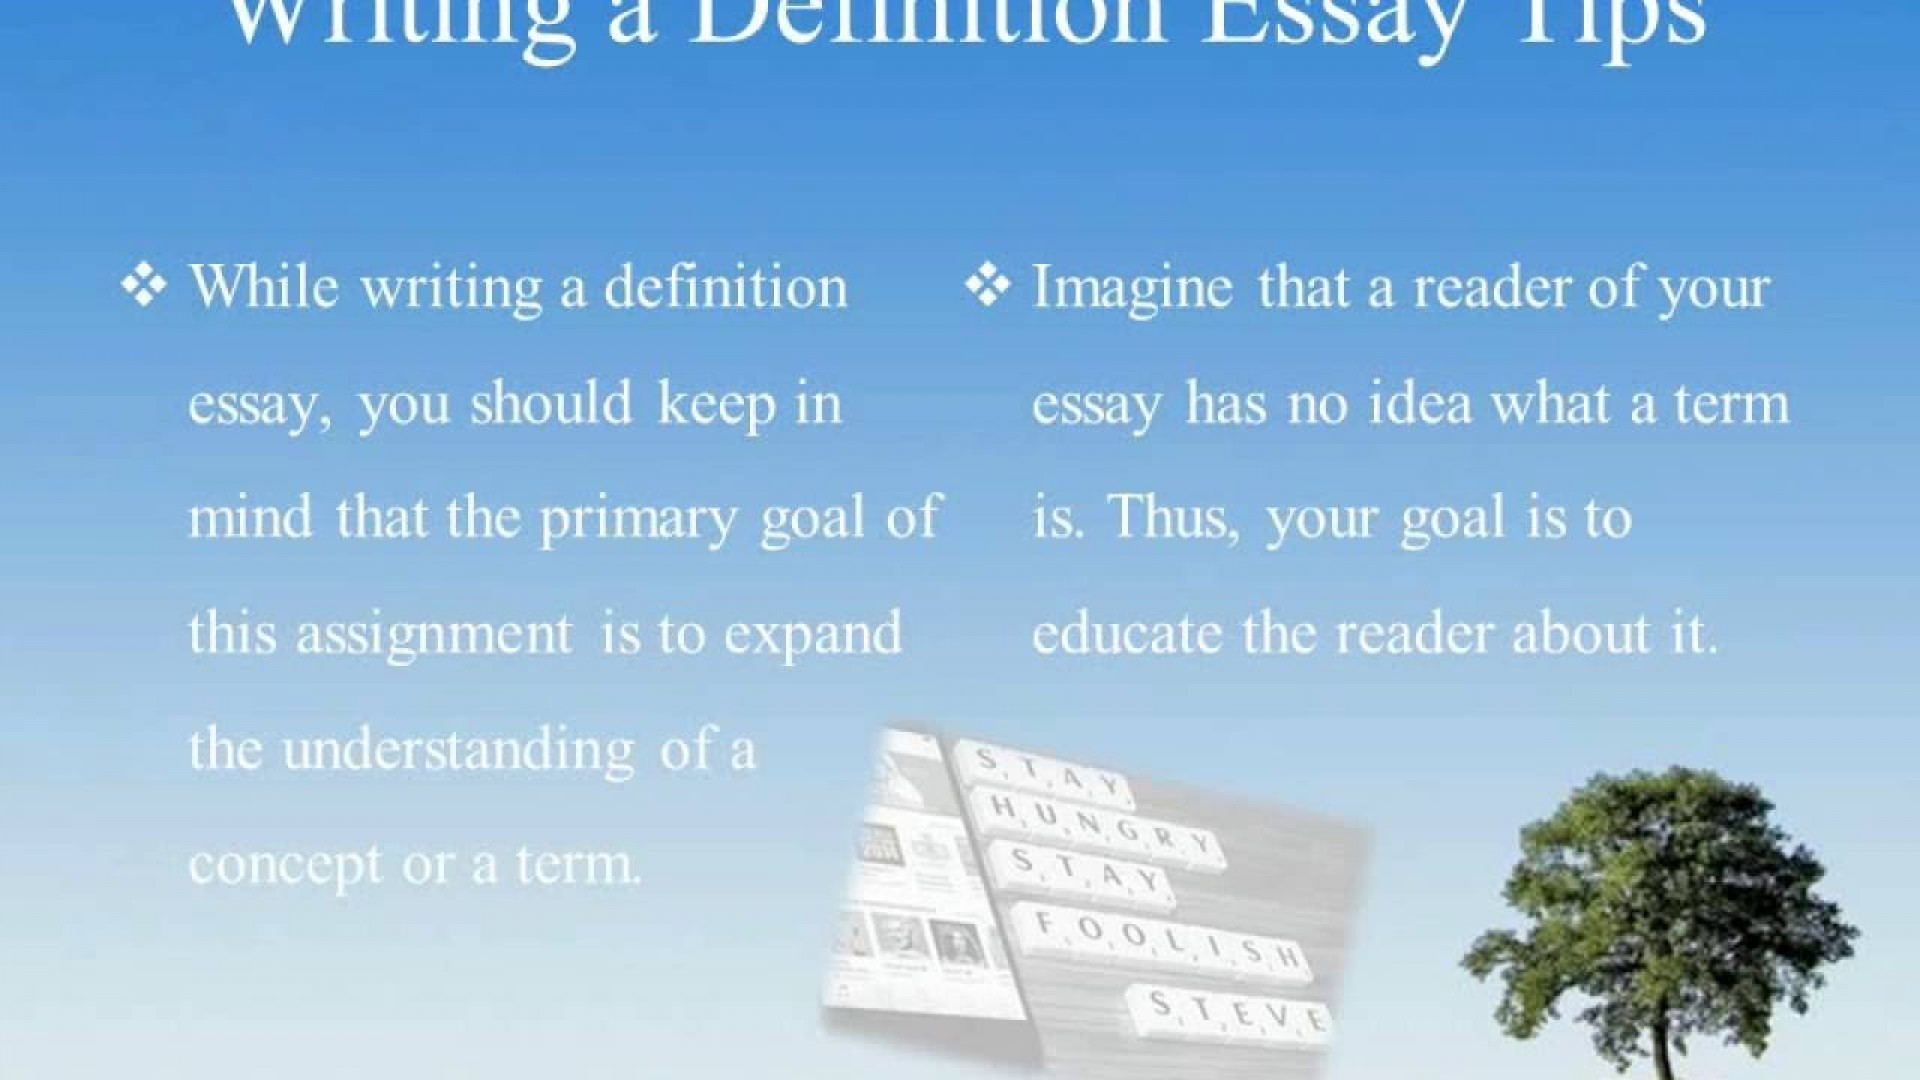 019 Definition Essay Topics Maxresdefault Striking For College Students Middle School 1920